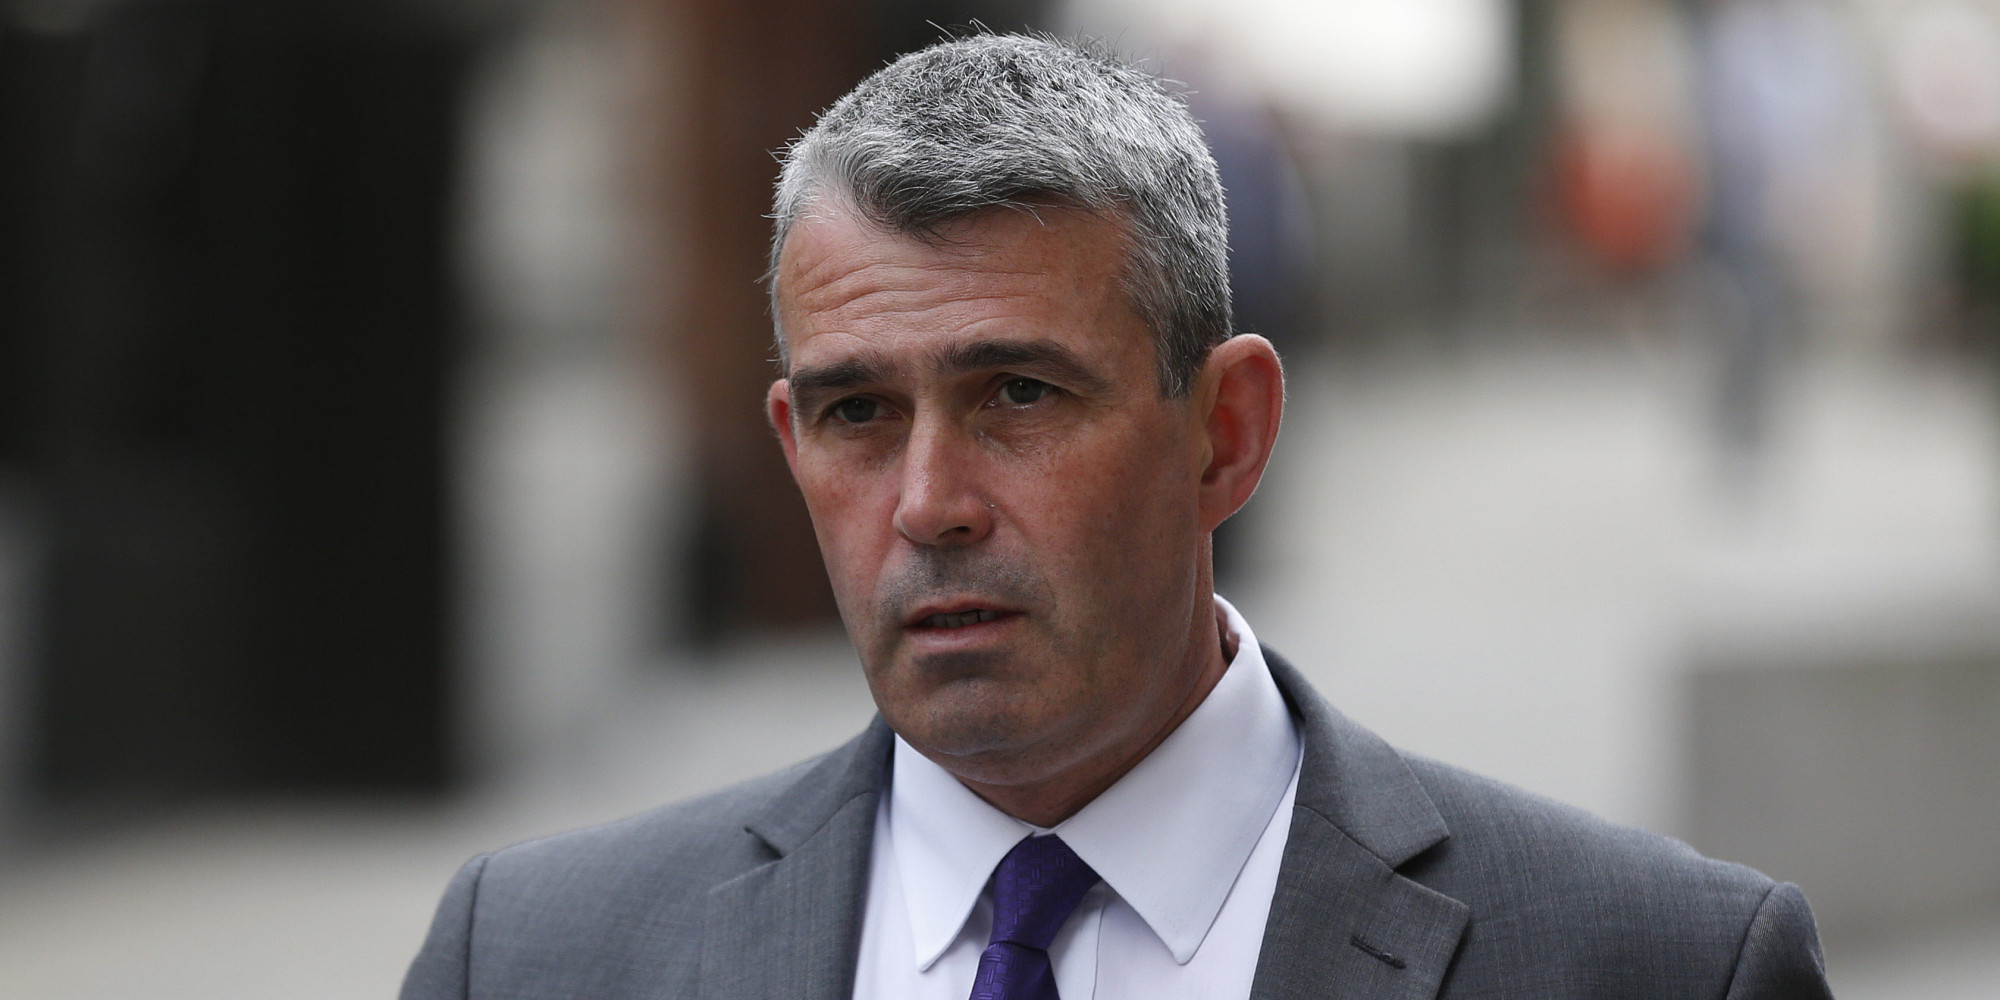 Mark Hanna, Former News UK Security Chief, To Blow Whistle On Company Over Rebekah Brooks' Return - o-MARK-HANNA-facebook